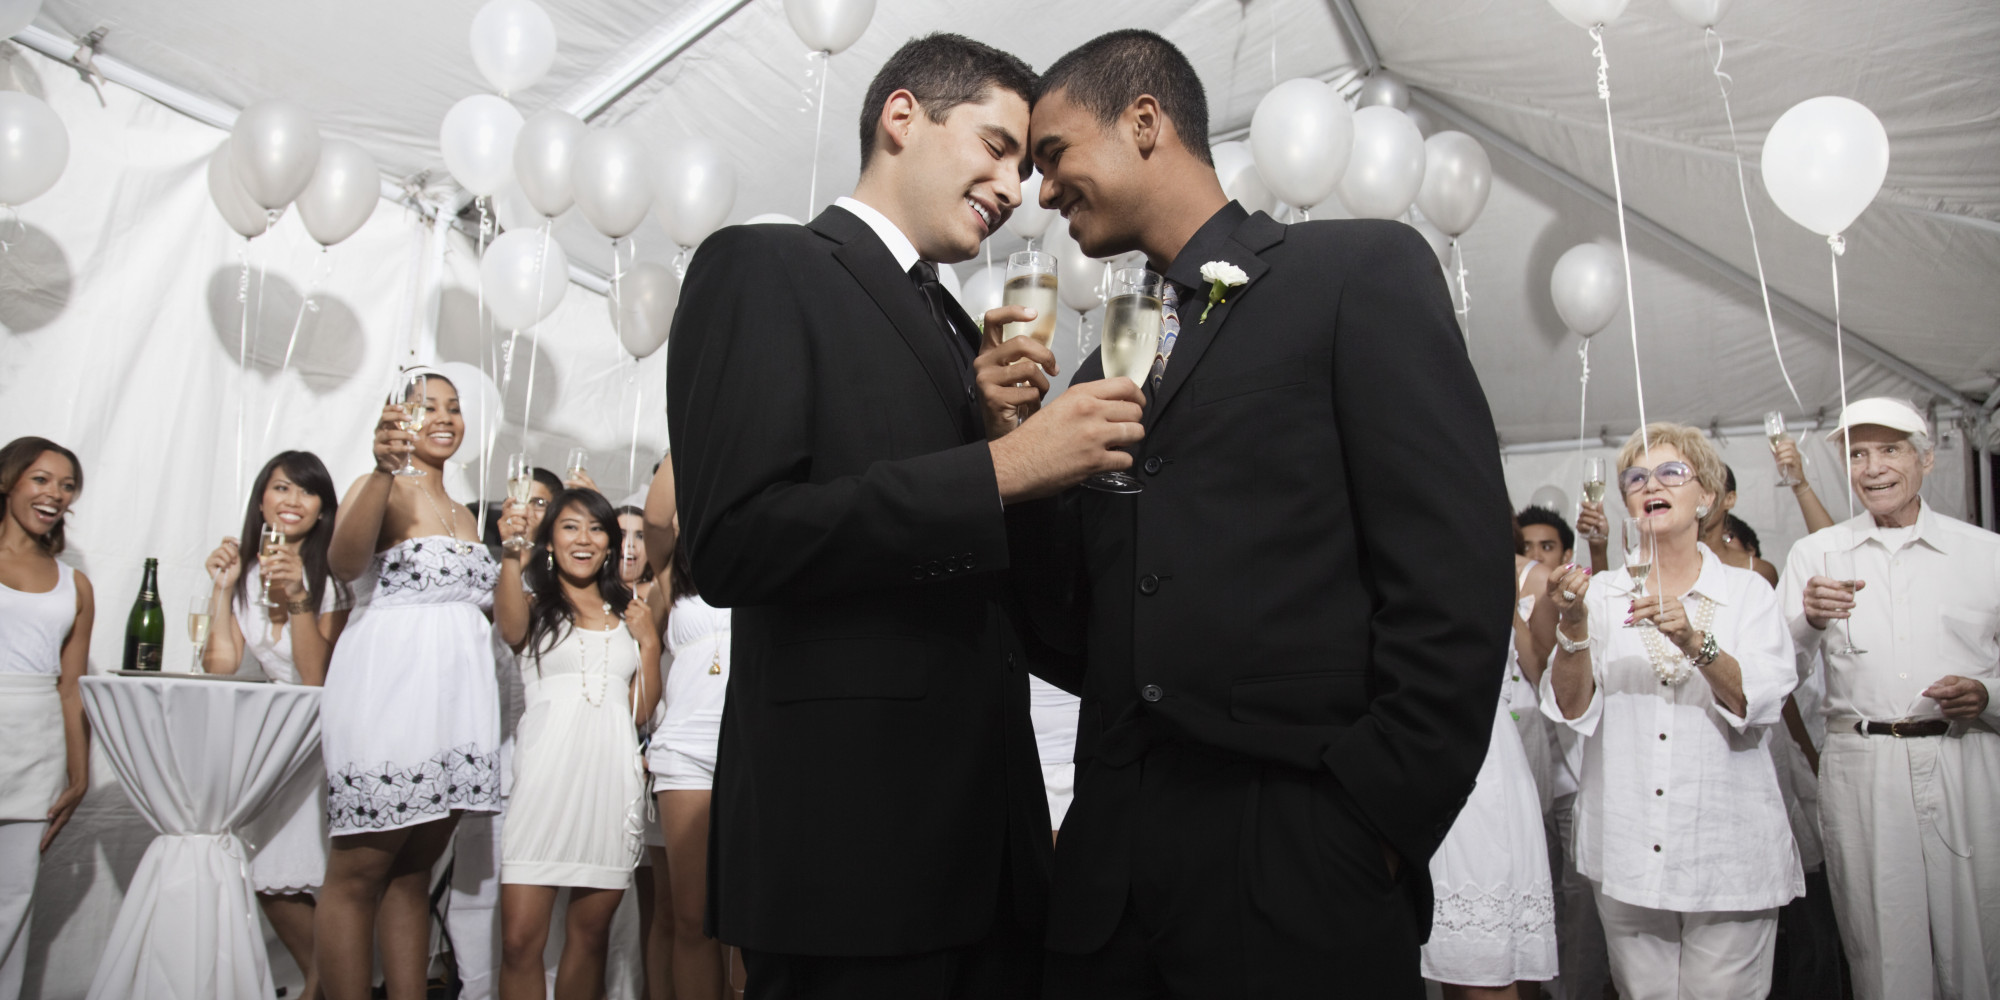 gay marriages The state of same-sex marriage is constantly changing if you live in a state that allows same-sex marriage, or a similar legal union, there are many complex issues.